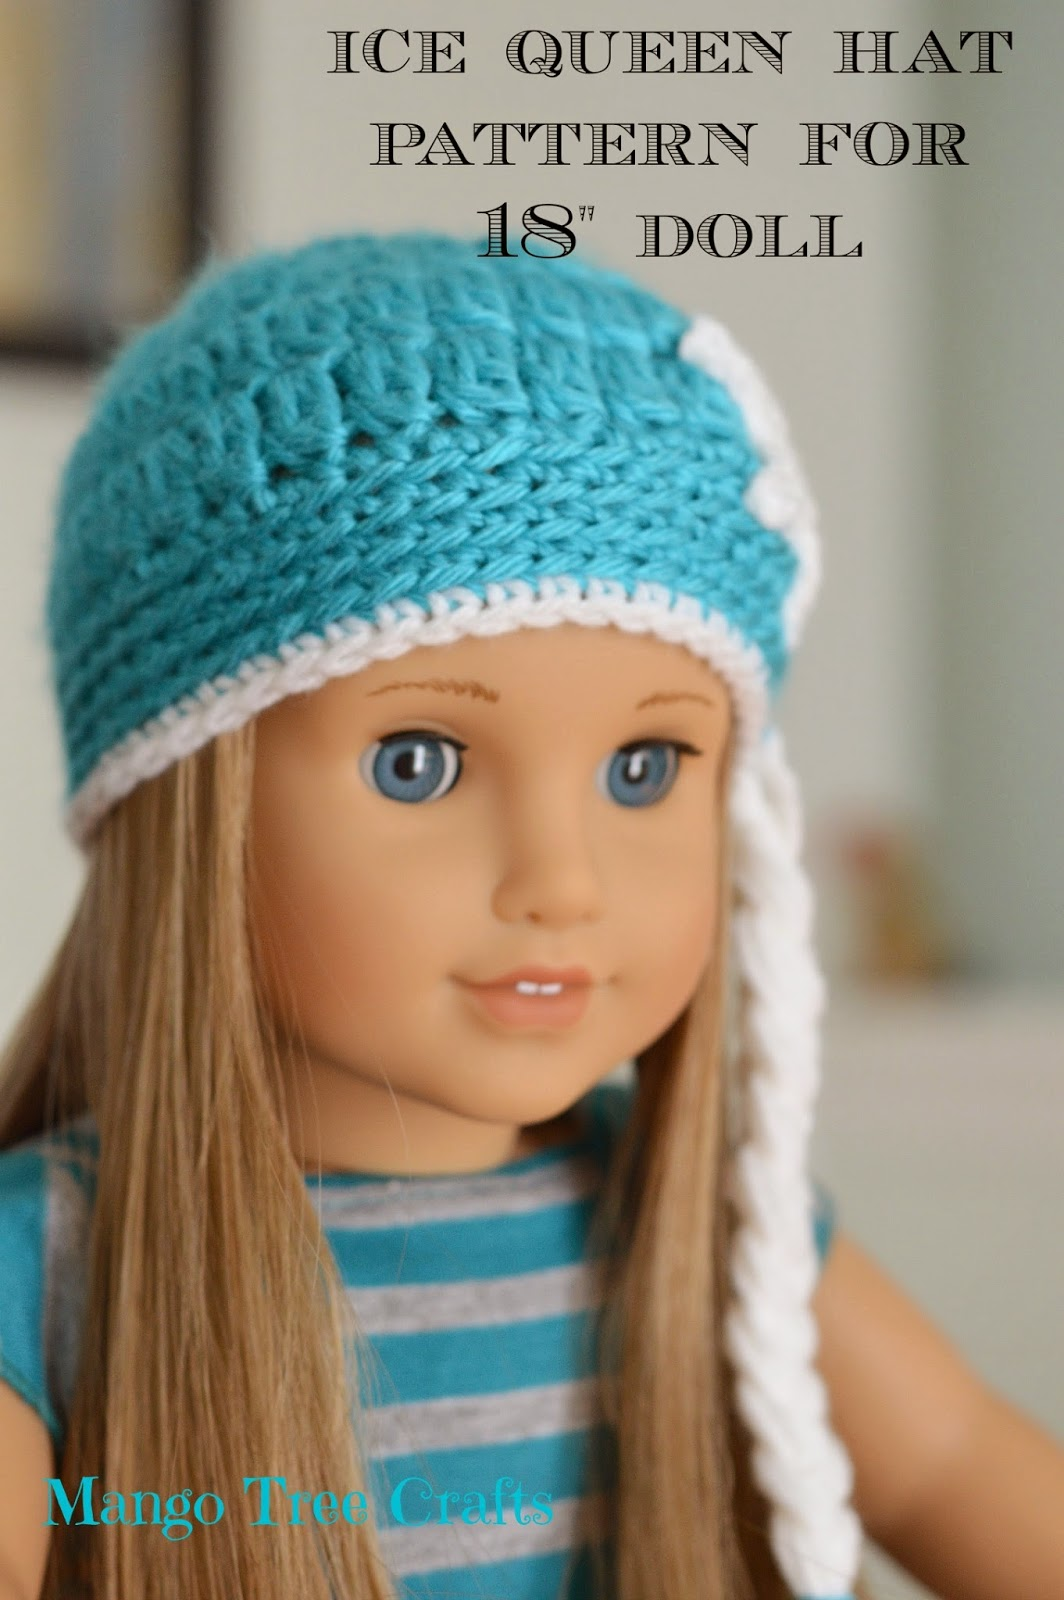 Knitting Pattern For A Dolls Hat : Mango Tree Crafts: Ice Queen Crochet Hat Pattern for 18